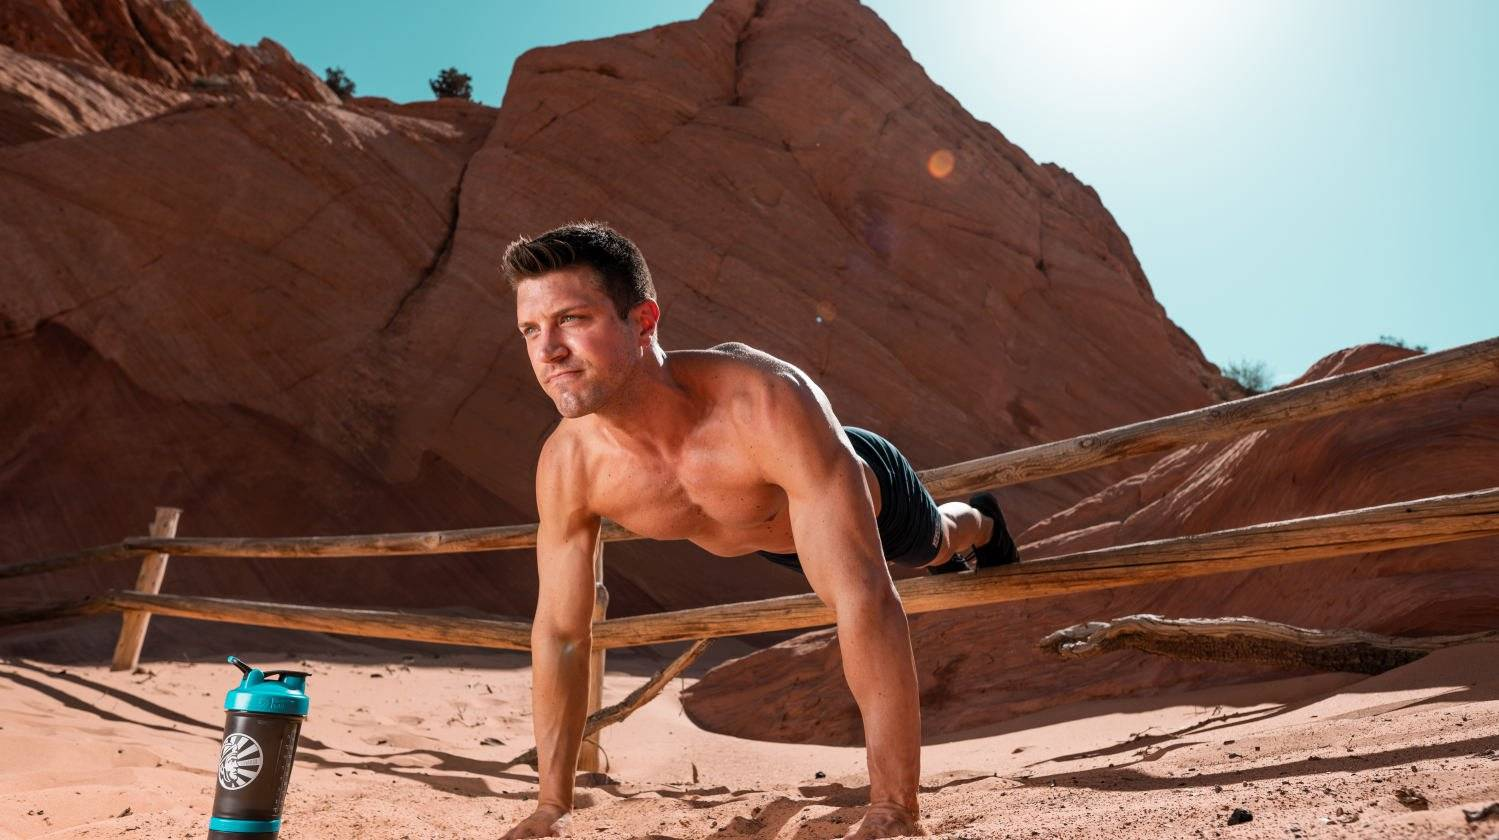 Ambassador Tommy Didario doing push up with feet elevated in the desert | The Best Protein Powder for Men | best protein powder for men weight loss | Featured